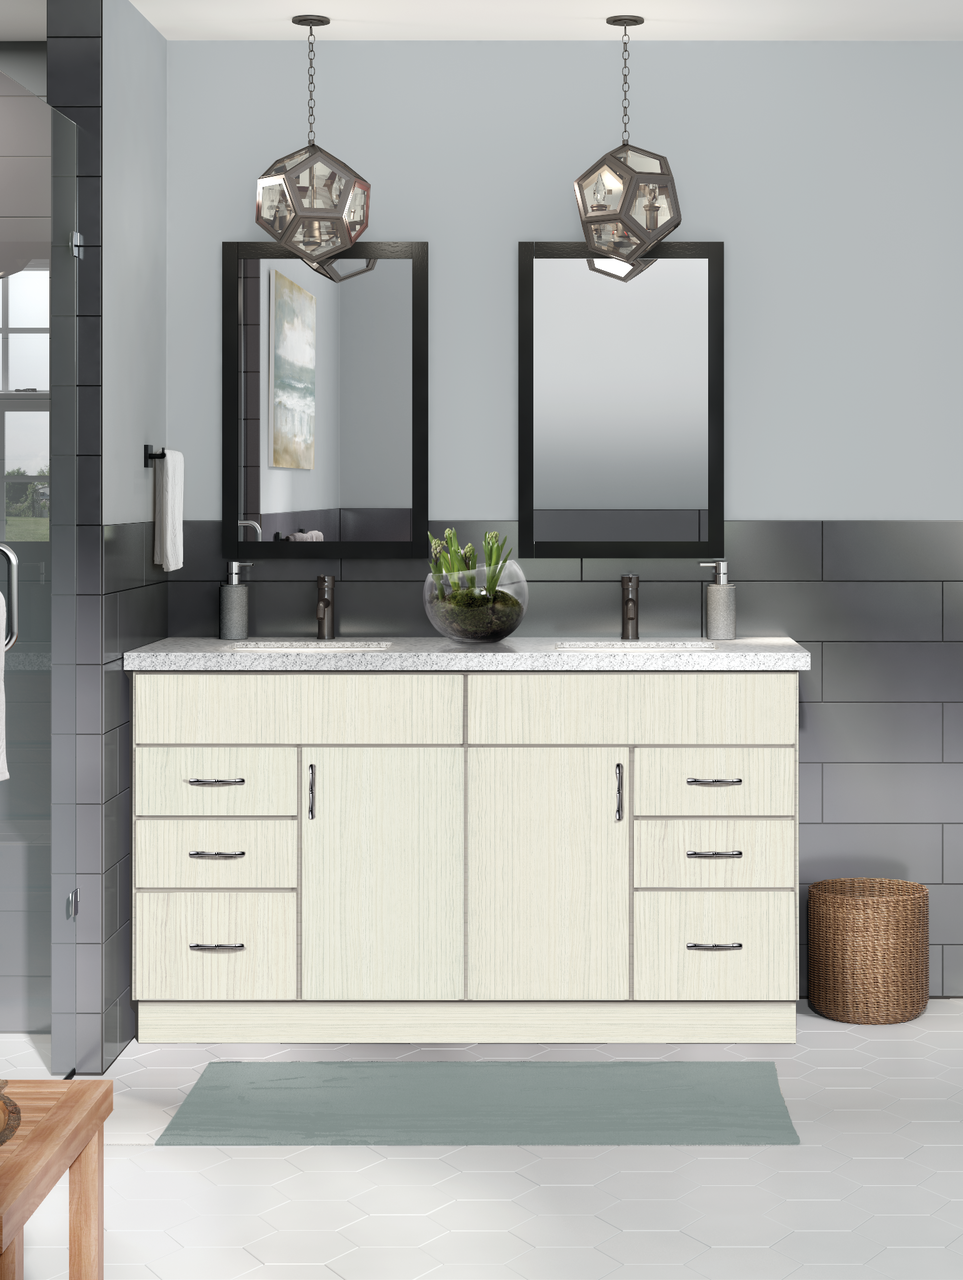 Classic Lanielle In Whisper Laminate Doors Bathroom Cabinetry